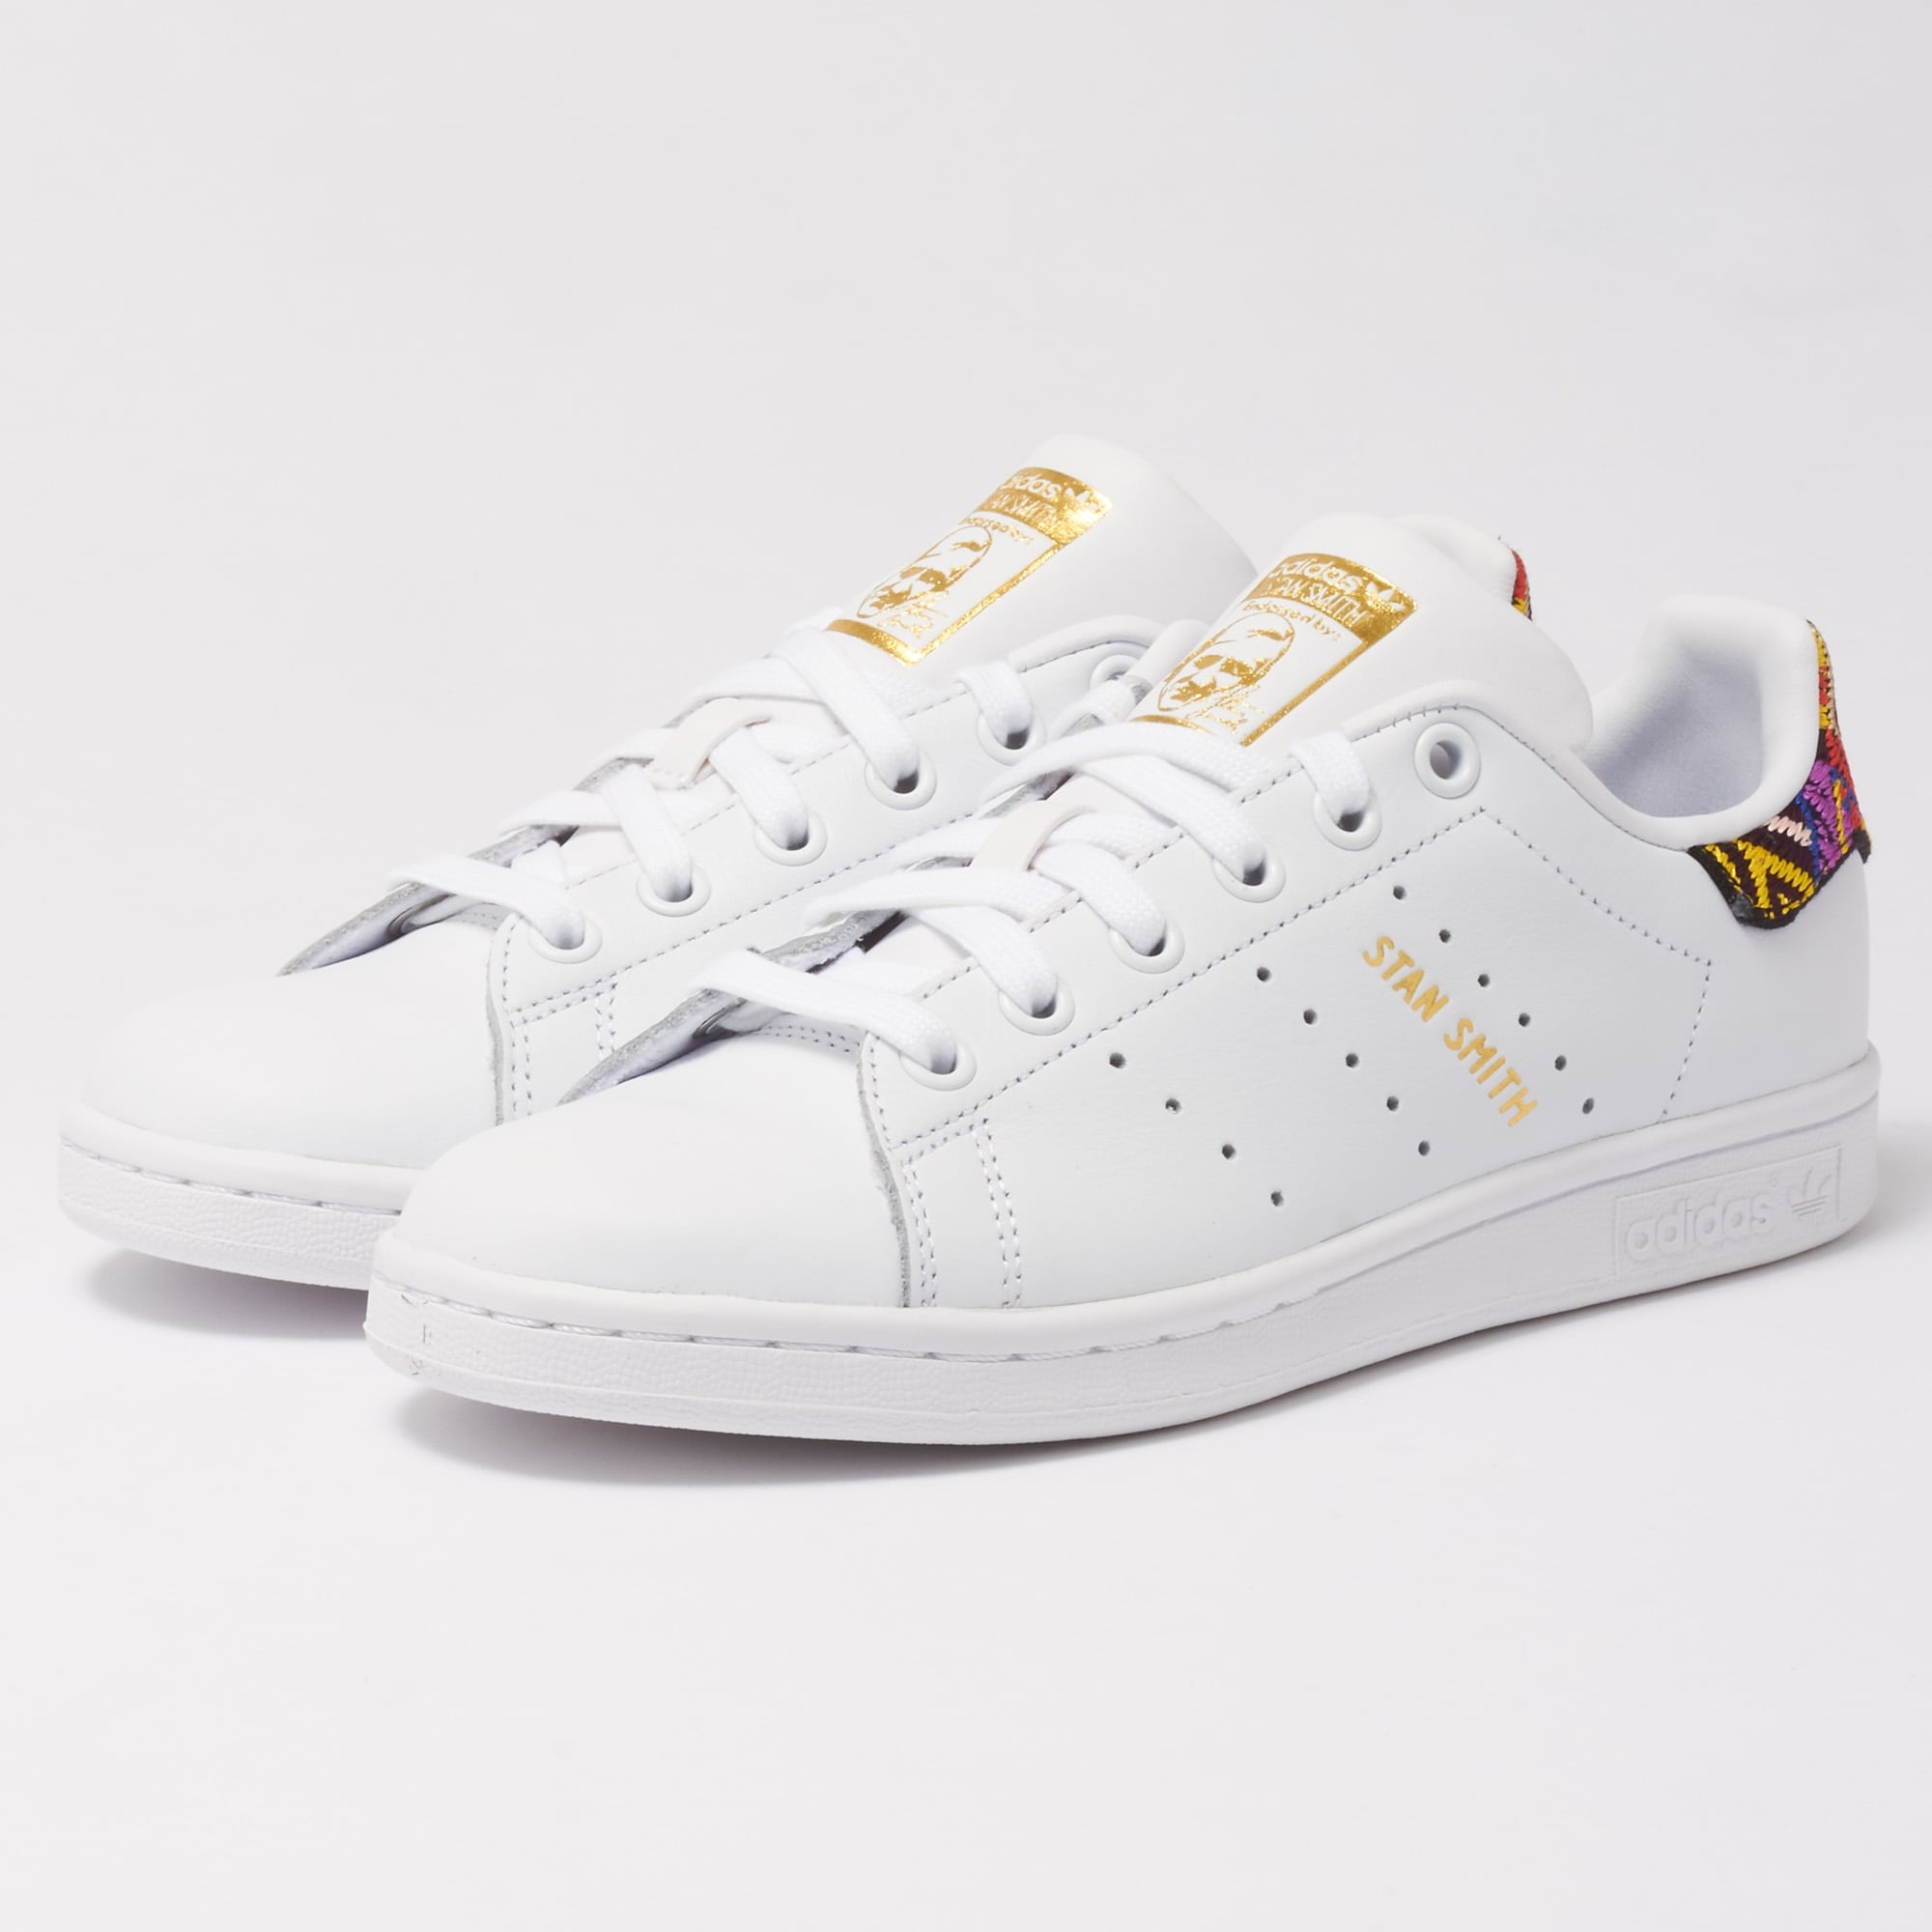 7b585df4335e3 Adidas x The FARM Company Stan Smith Sneakers (White) at Dandy Fellow